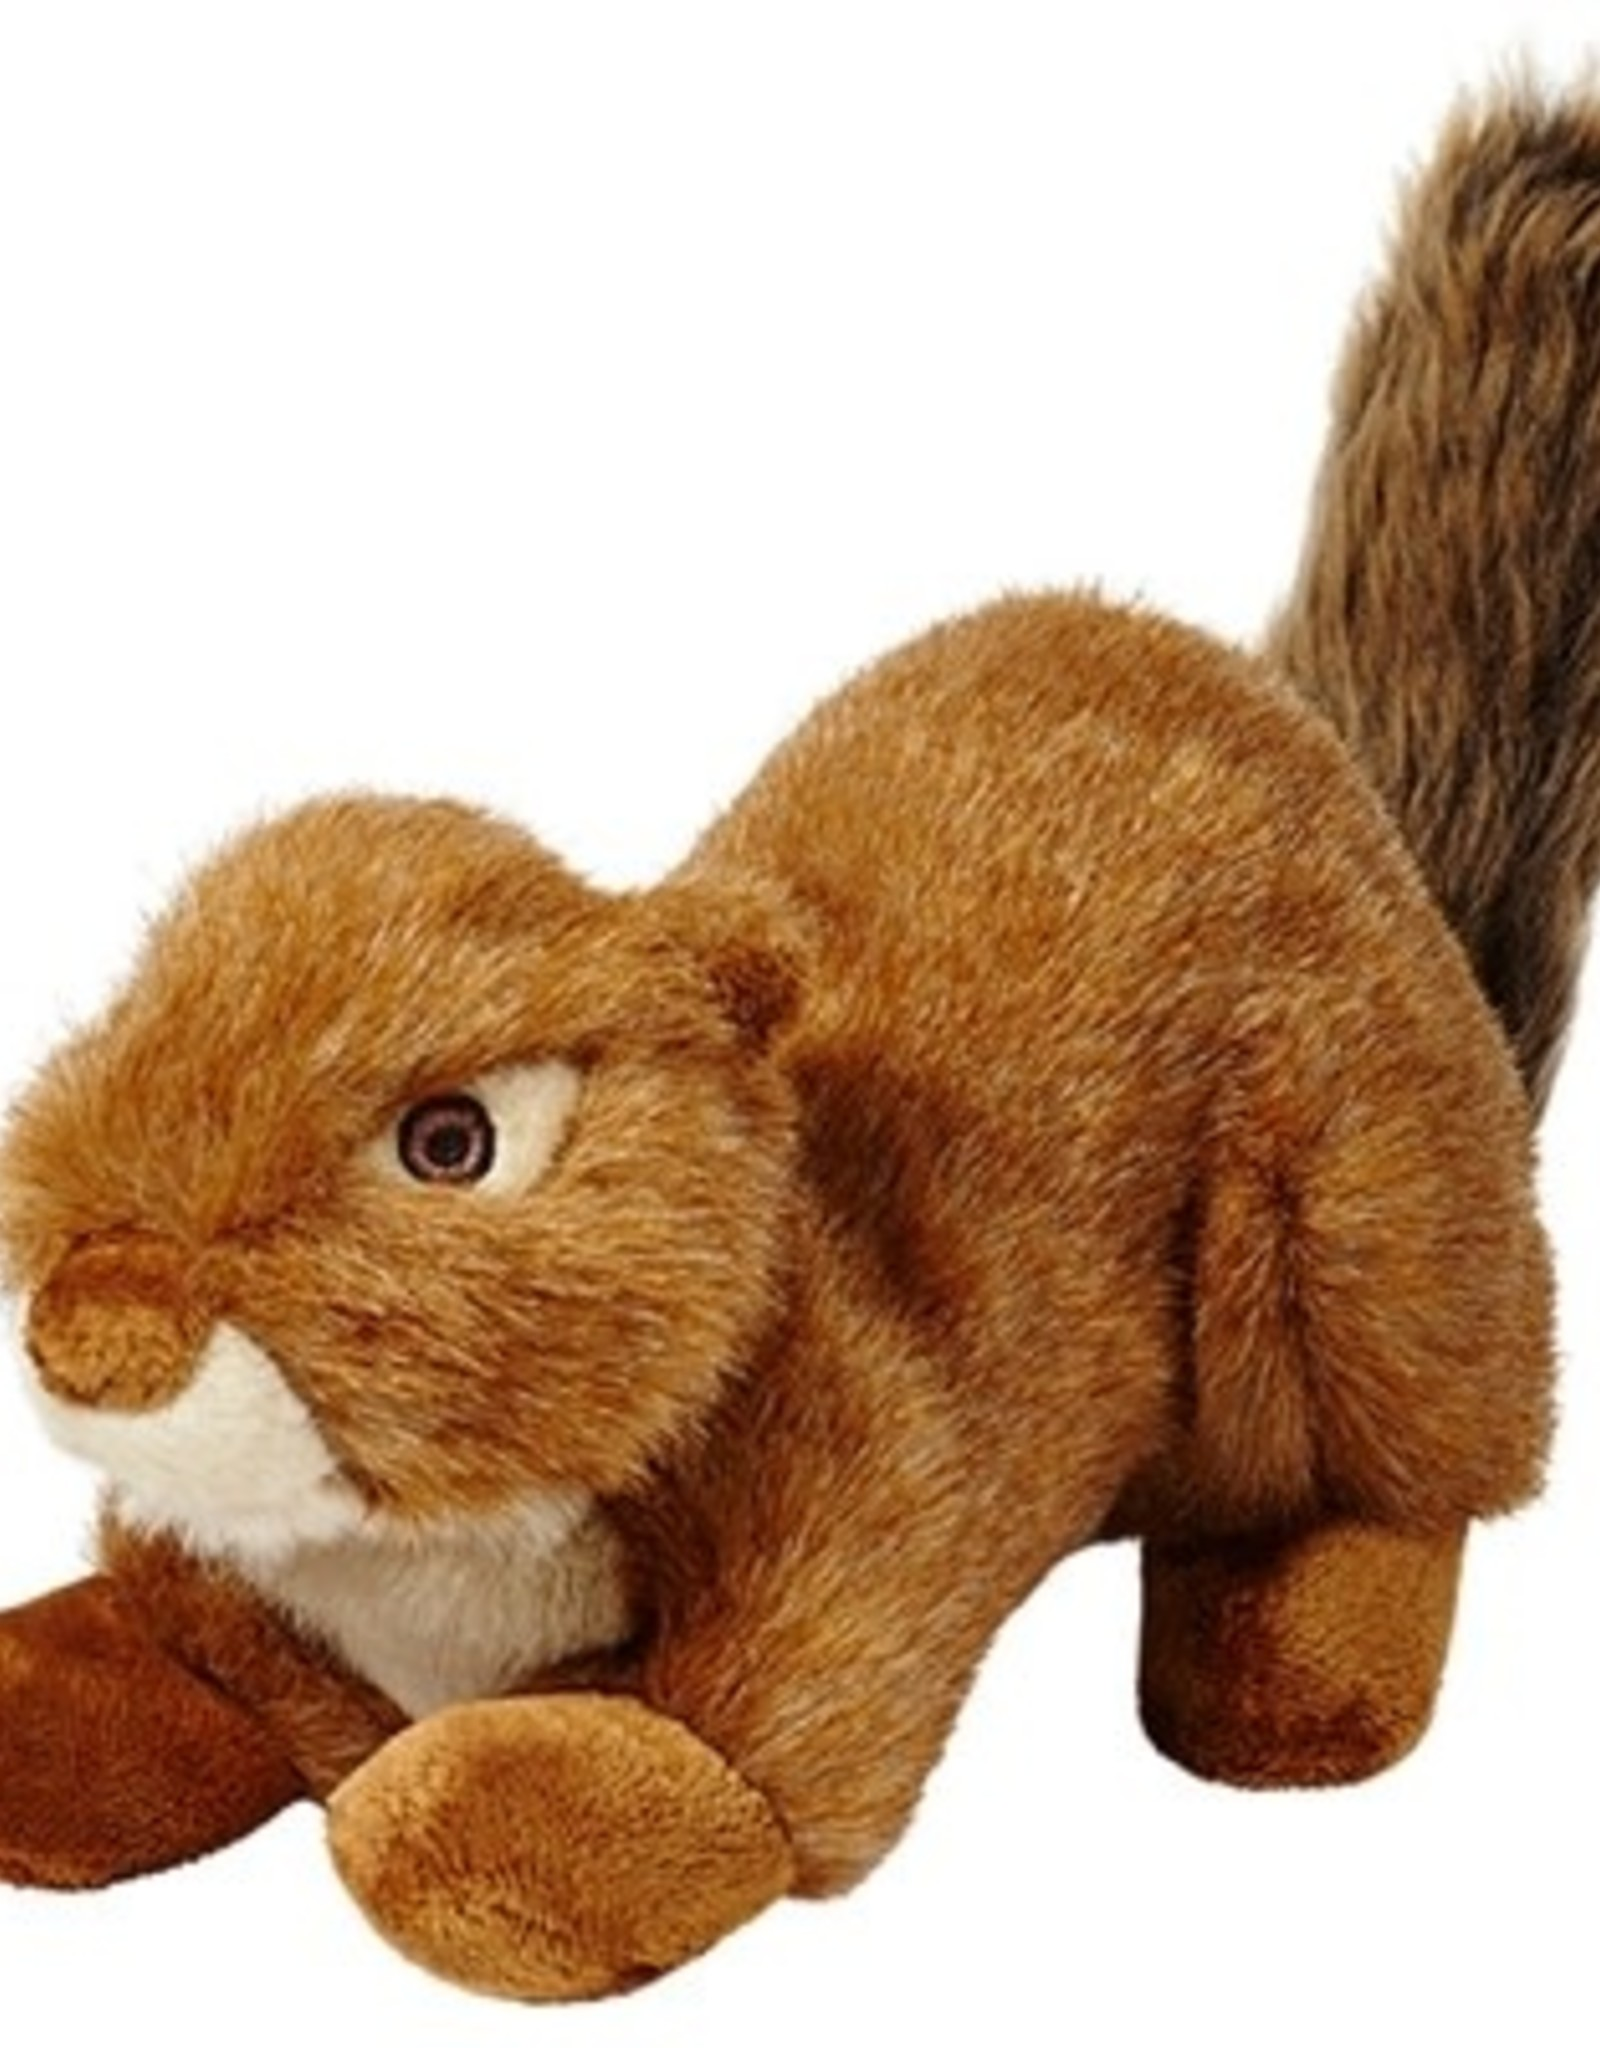 Fluff & Tuff Fluff & Tuff Red Squirrel Squeakerless